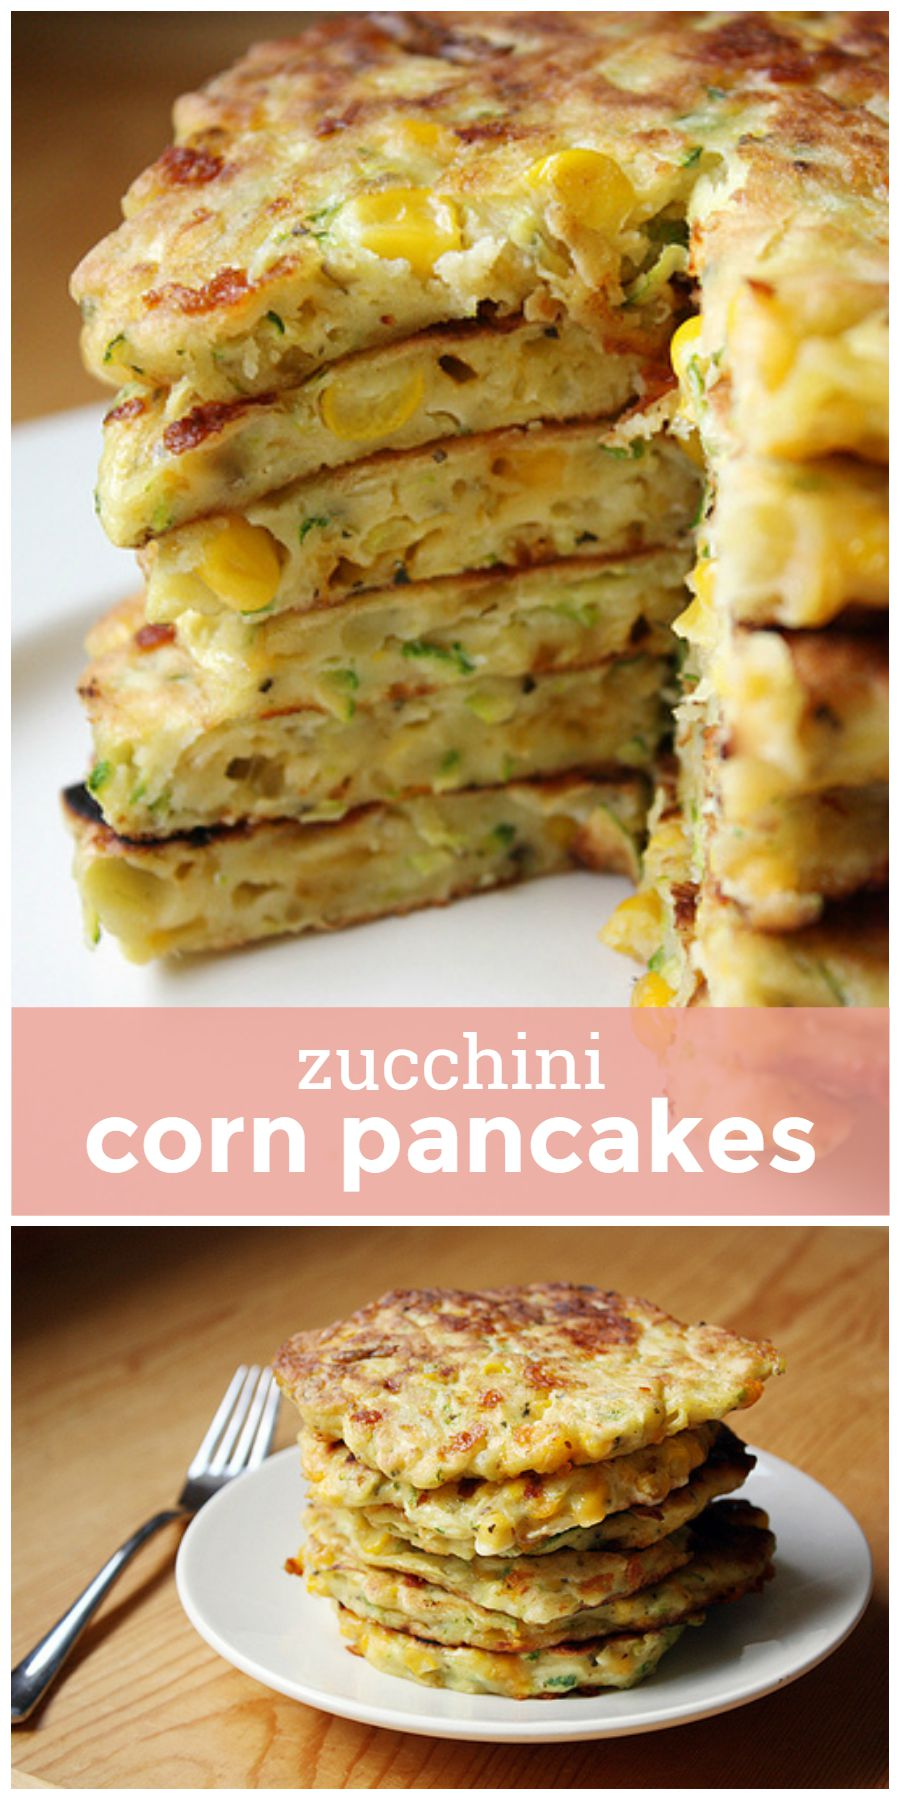 Zucchini Corn Pancakes -- fresh shredded zucchini and sweet corn come together in these easy and flavorful veggie-packed pancakes! girlversusdough.com @girlversusdough